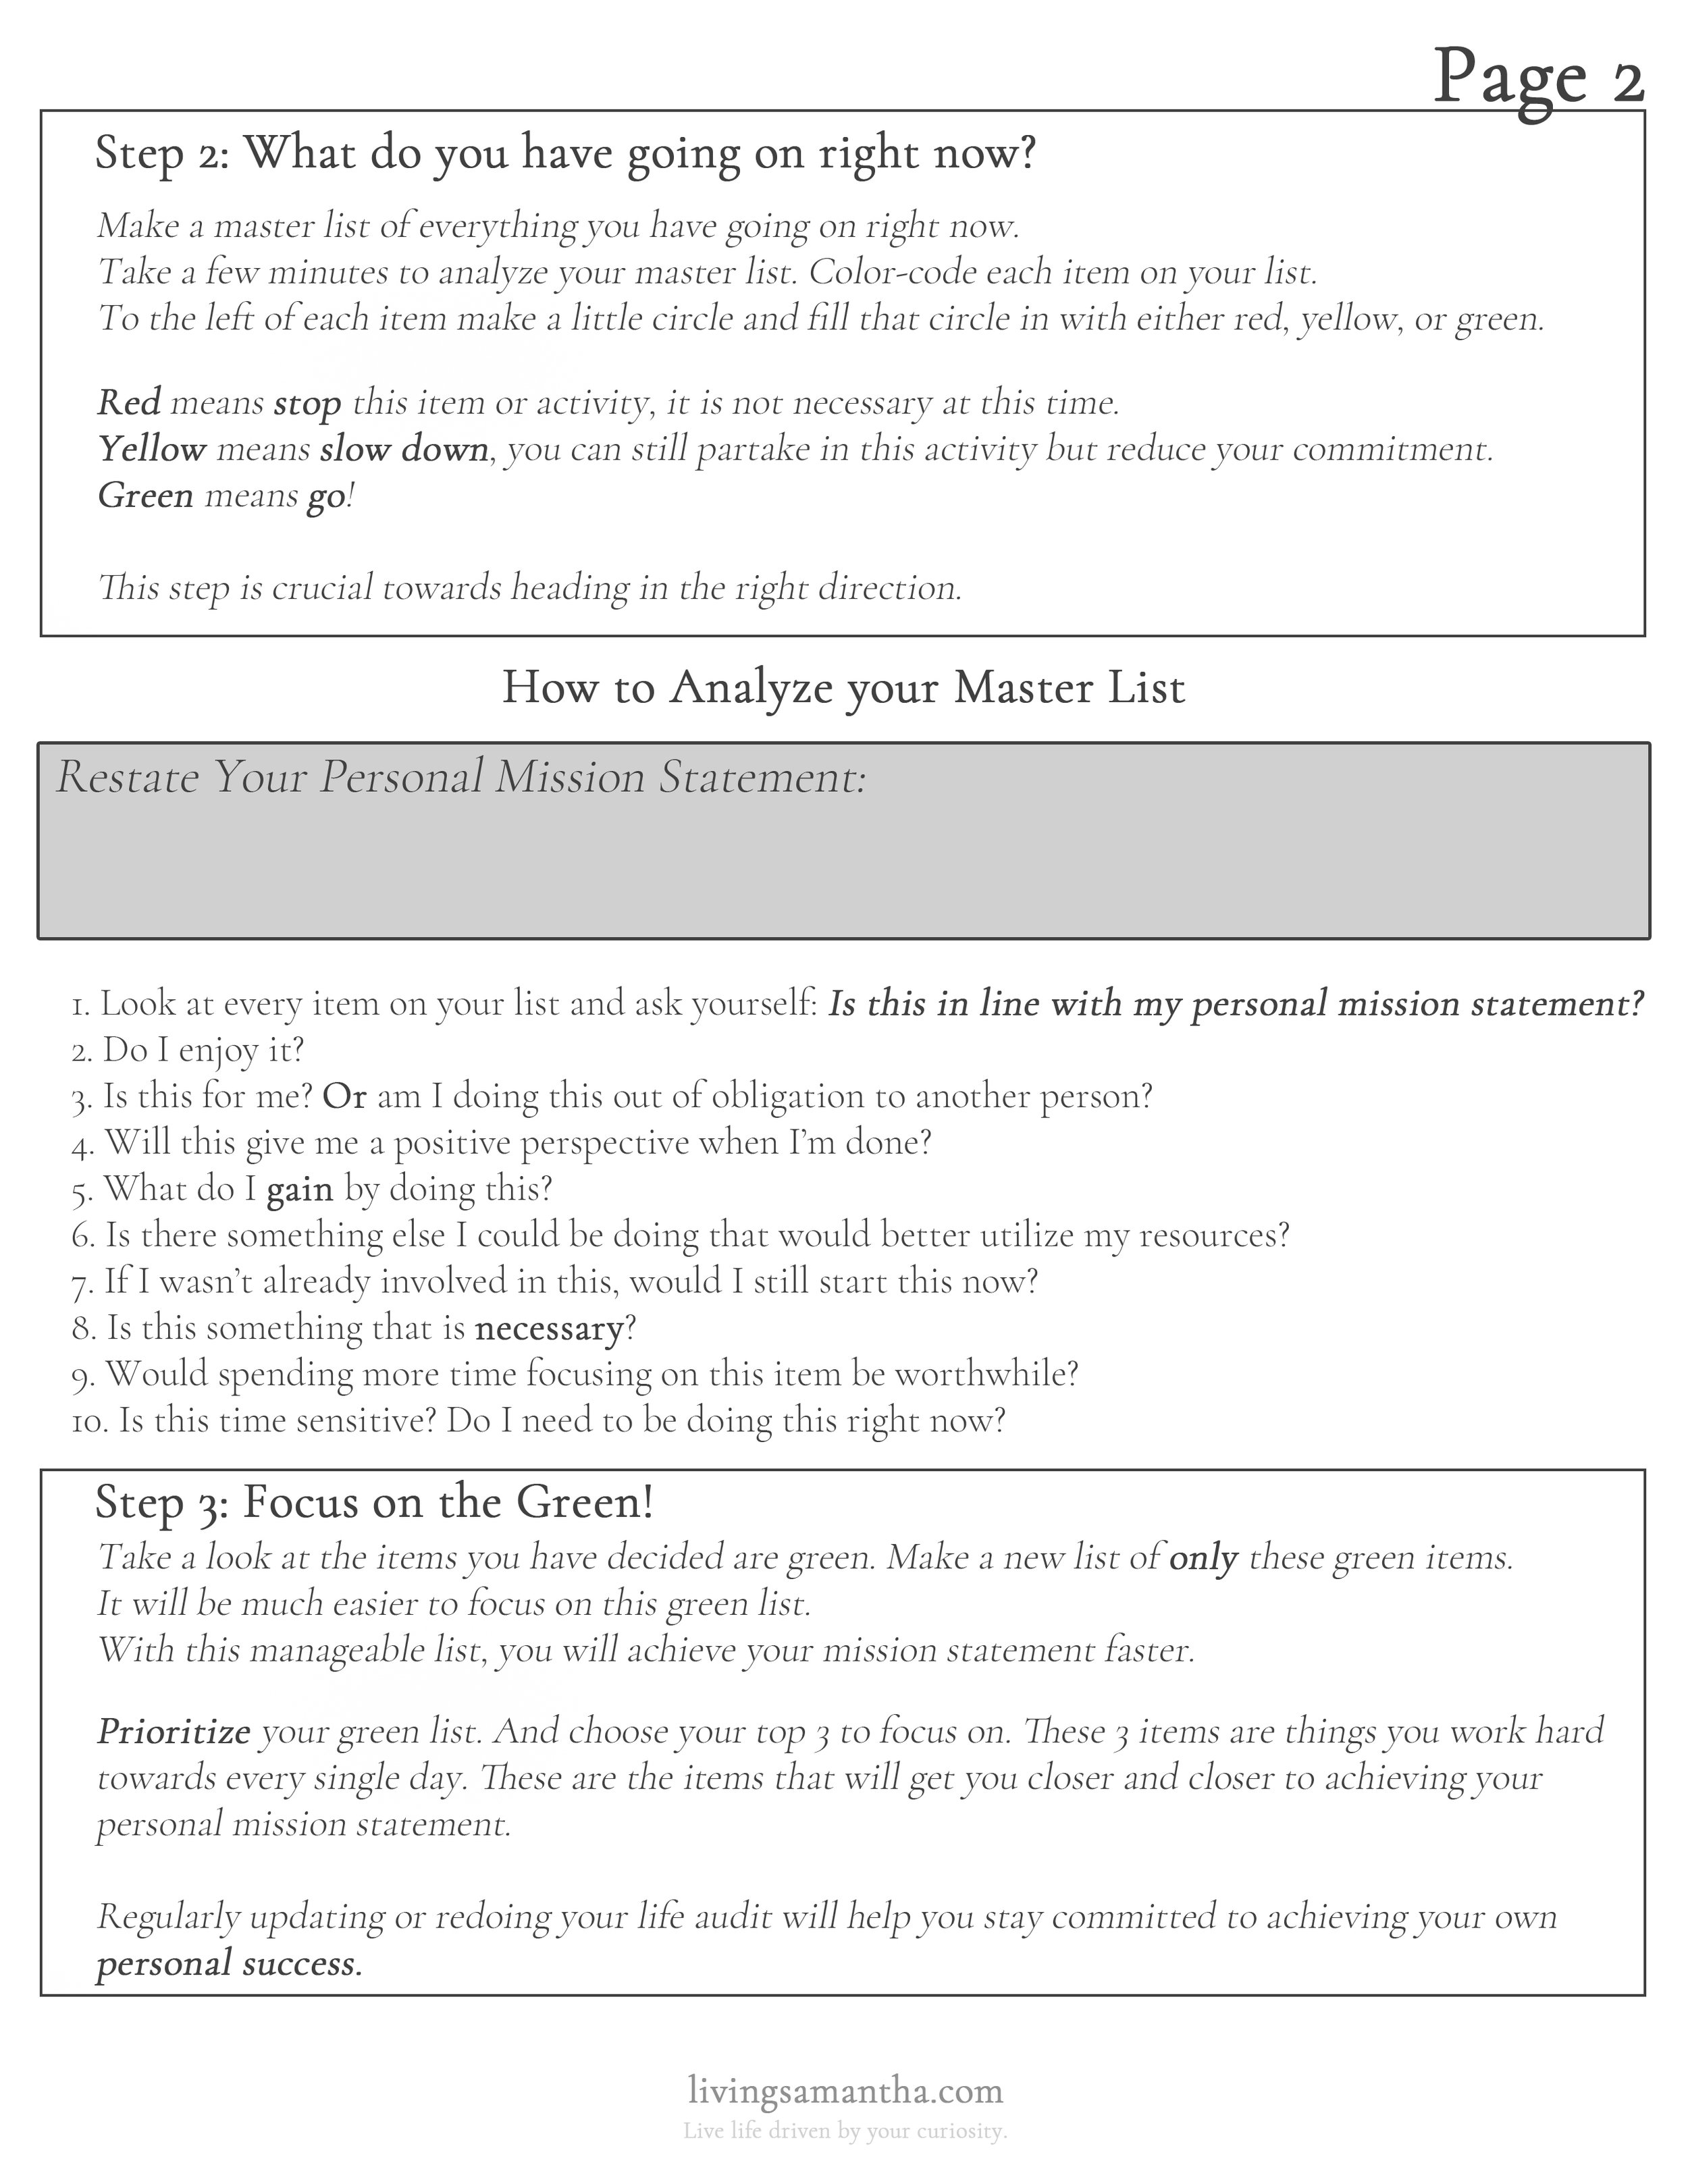 How to do a Life Audit Page 2.jpg